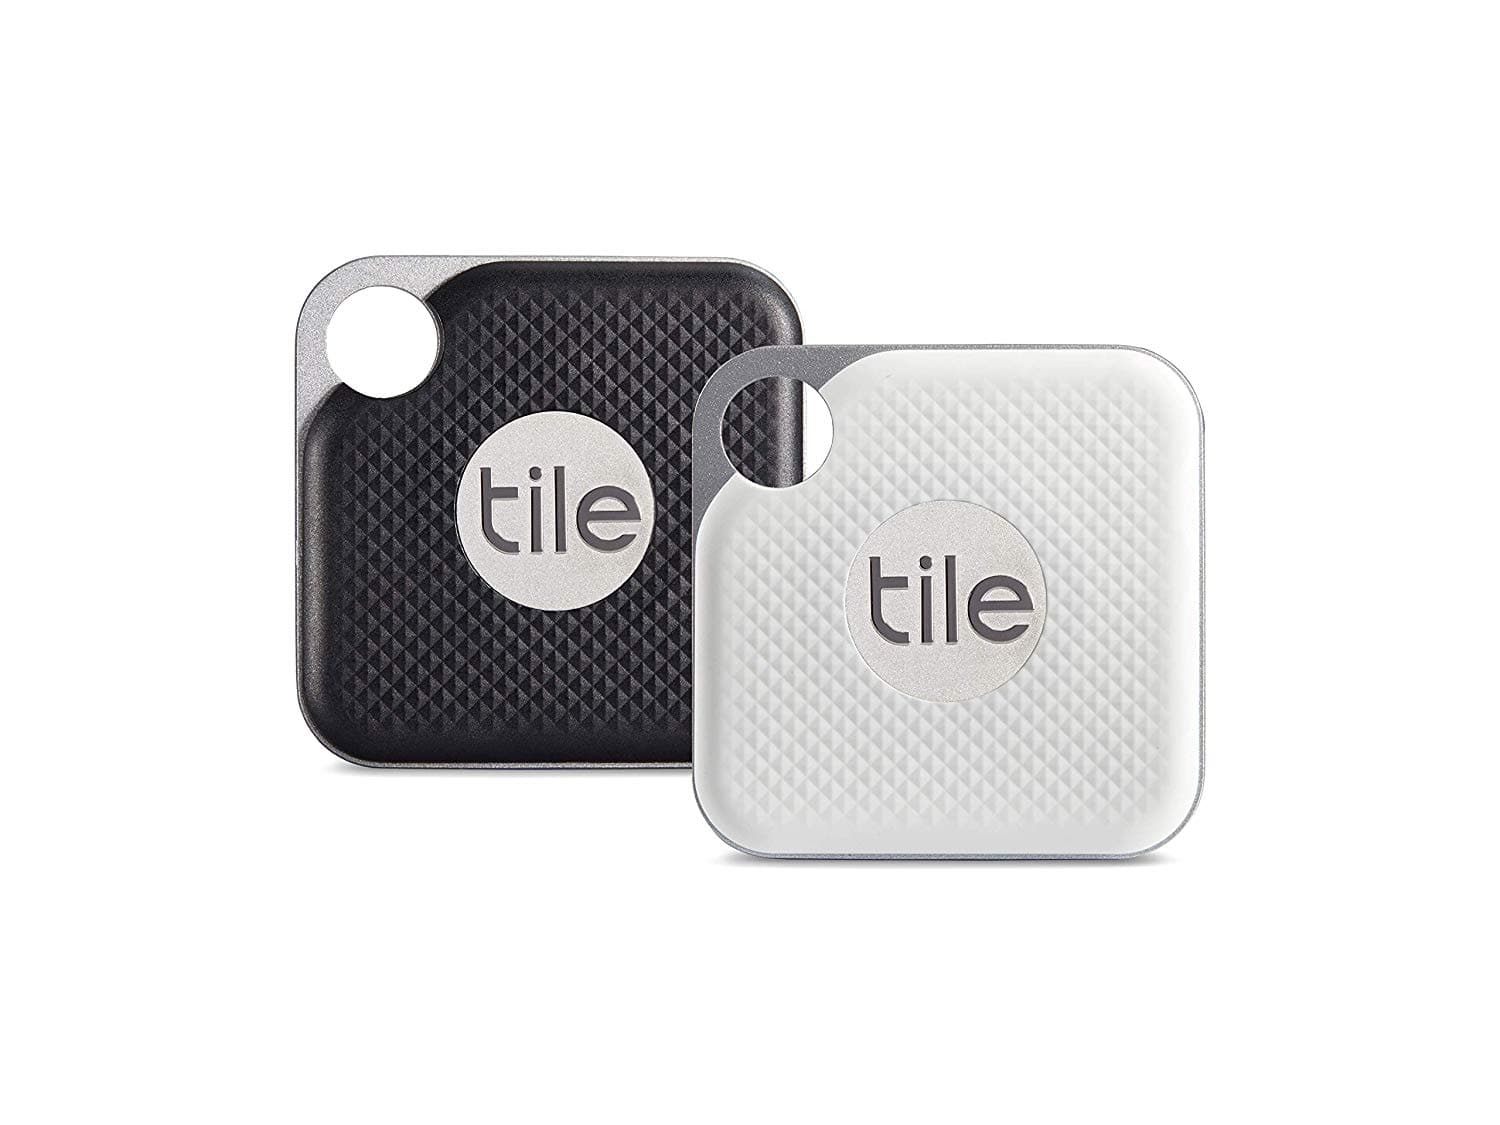 Tile Pro with Replaceable Battery - 2 pack Black/White $38.98